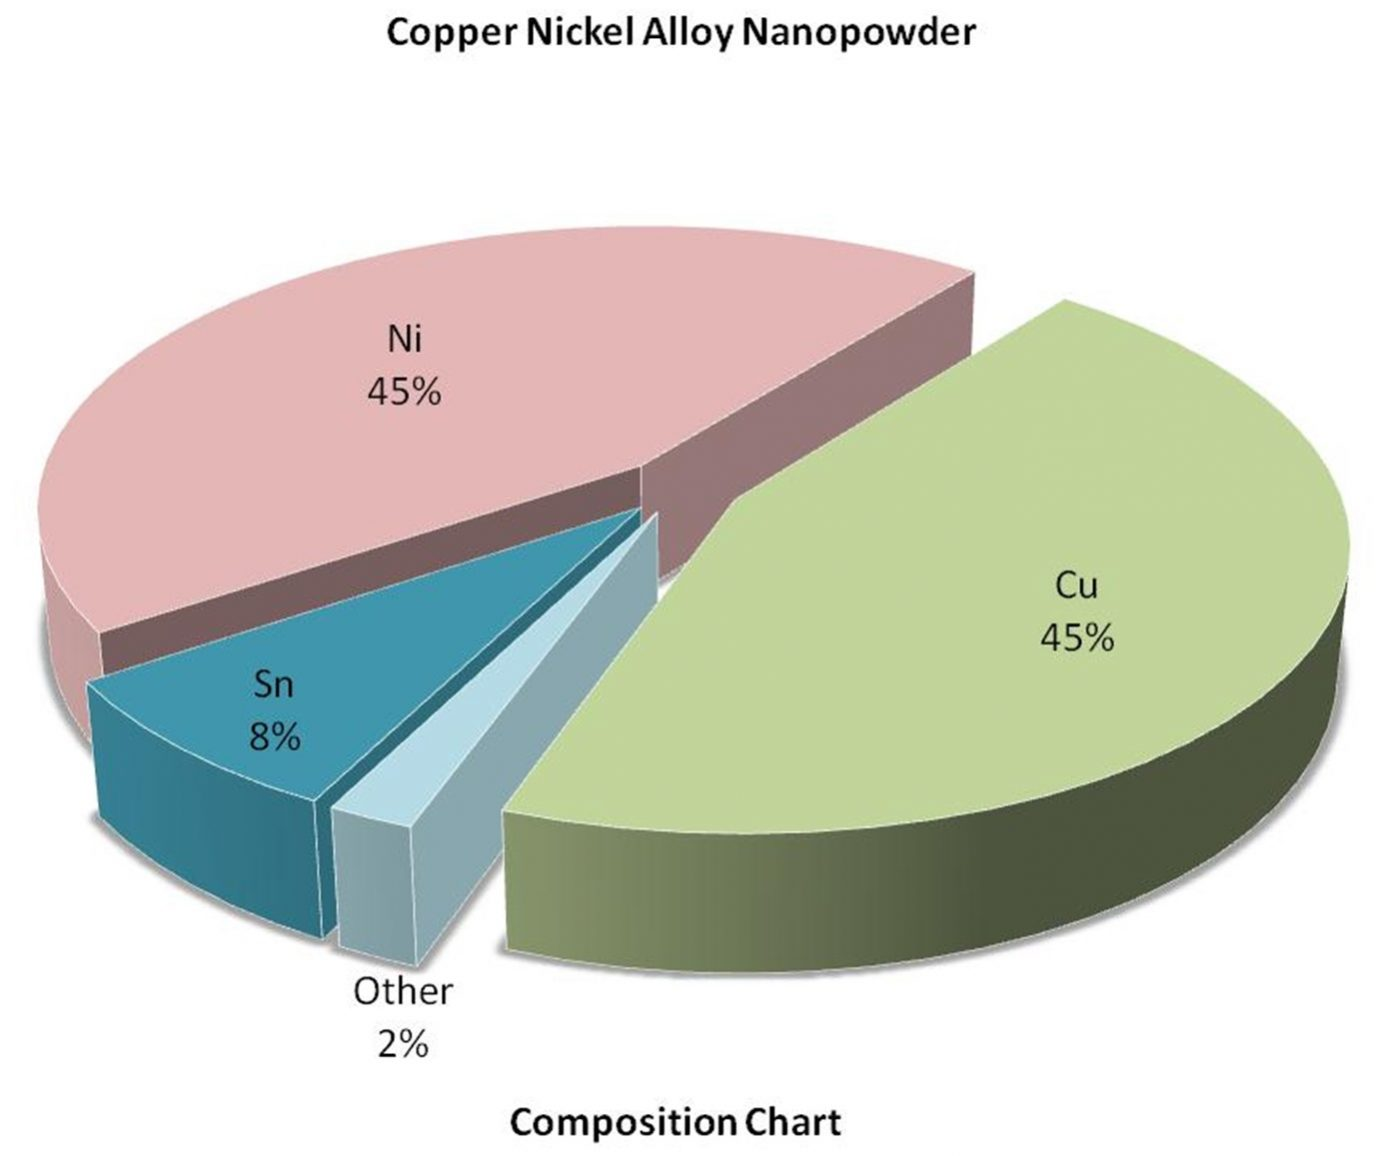 Composition Chart – Cu:Ni Alloy Nanoparticles